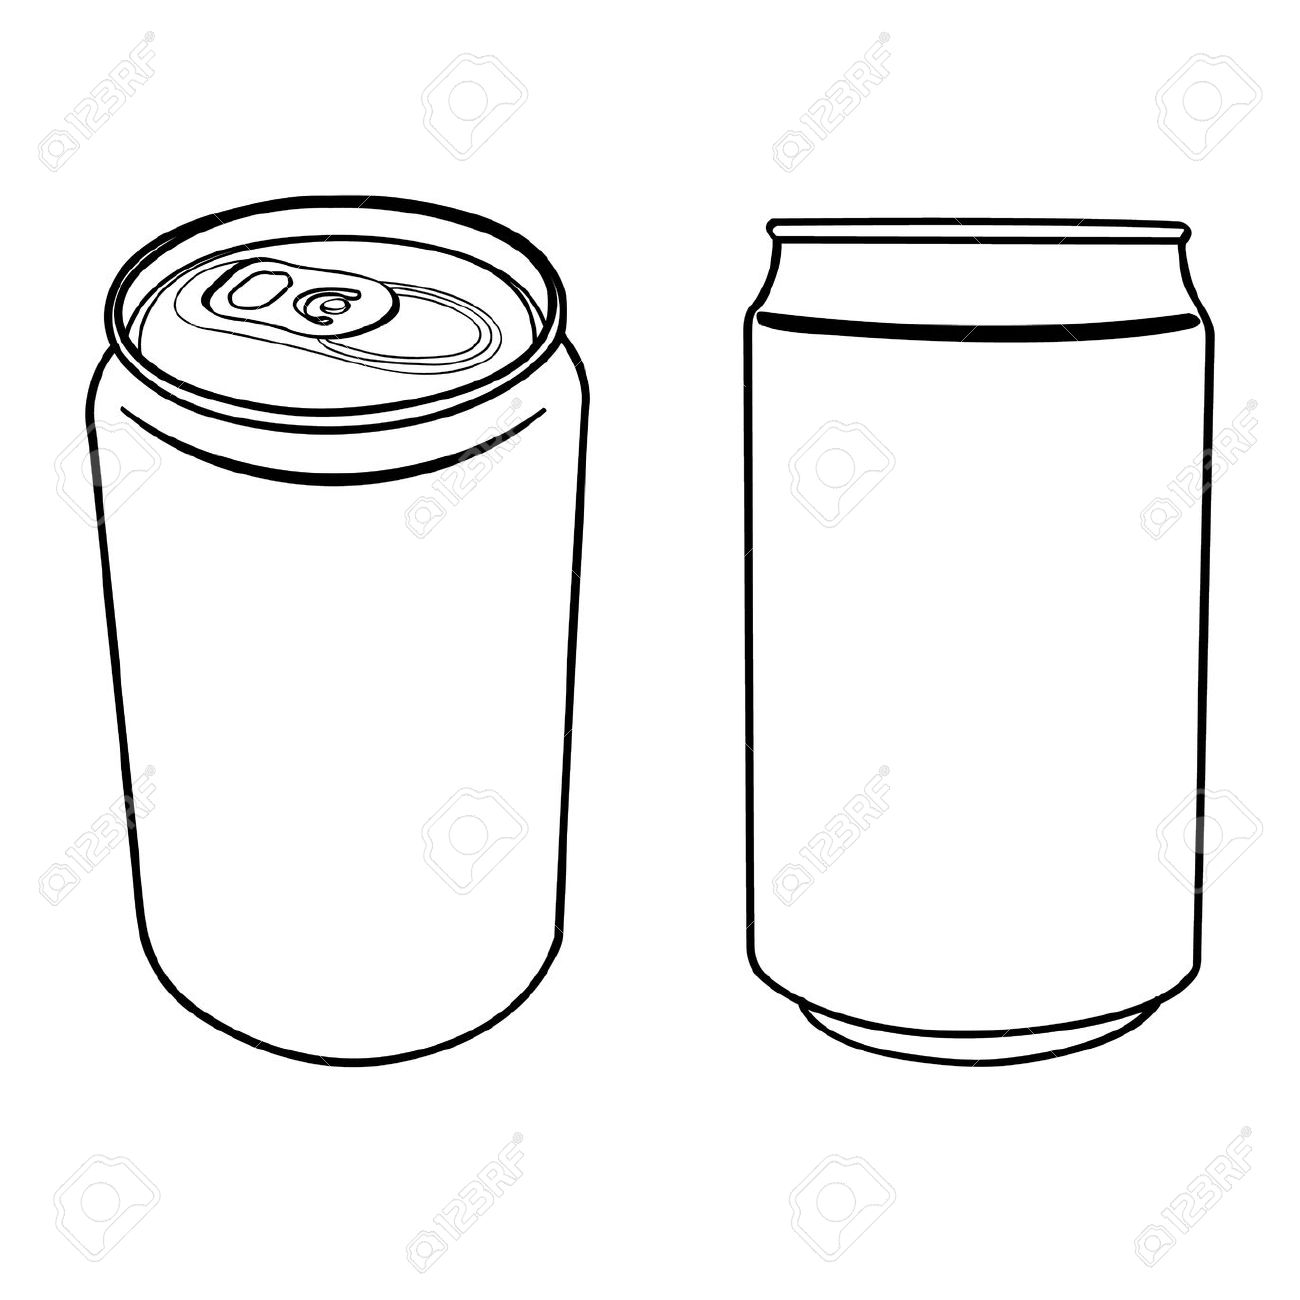 Black And White Cans